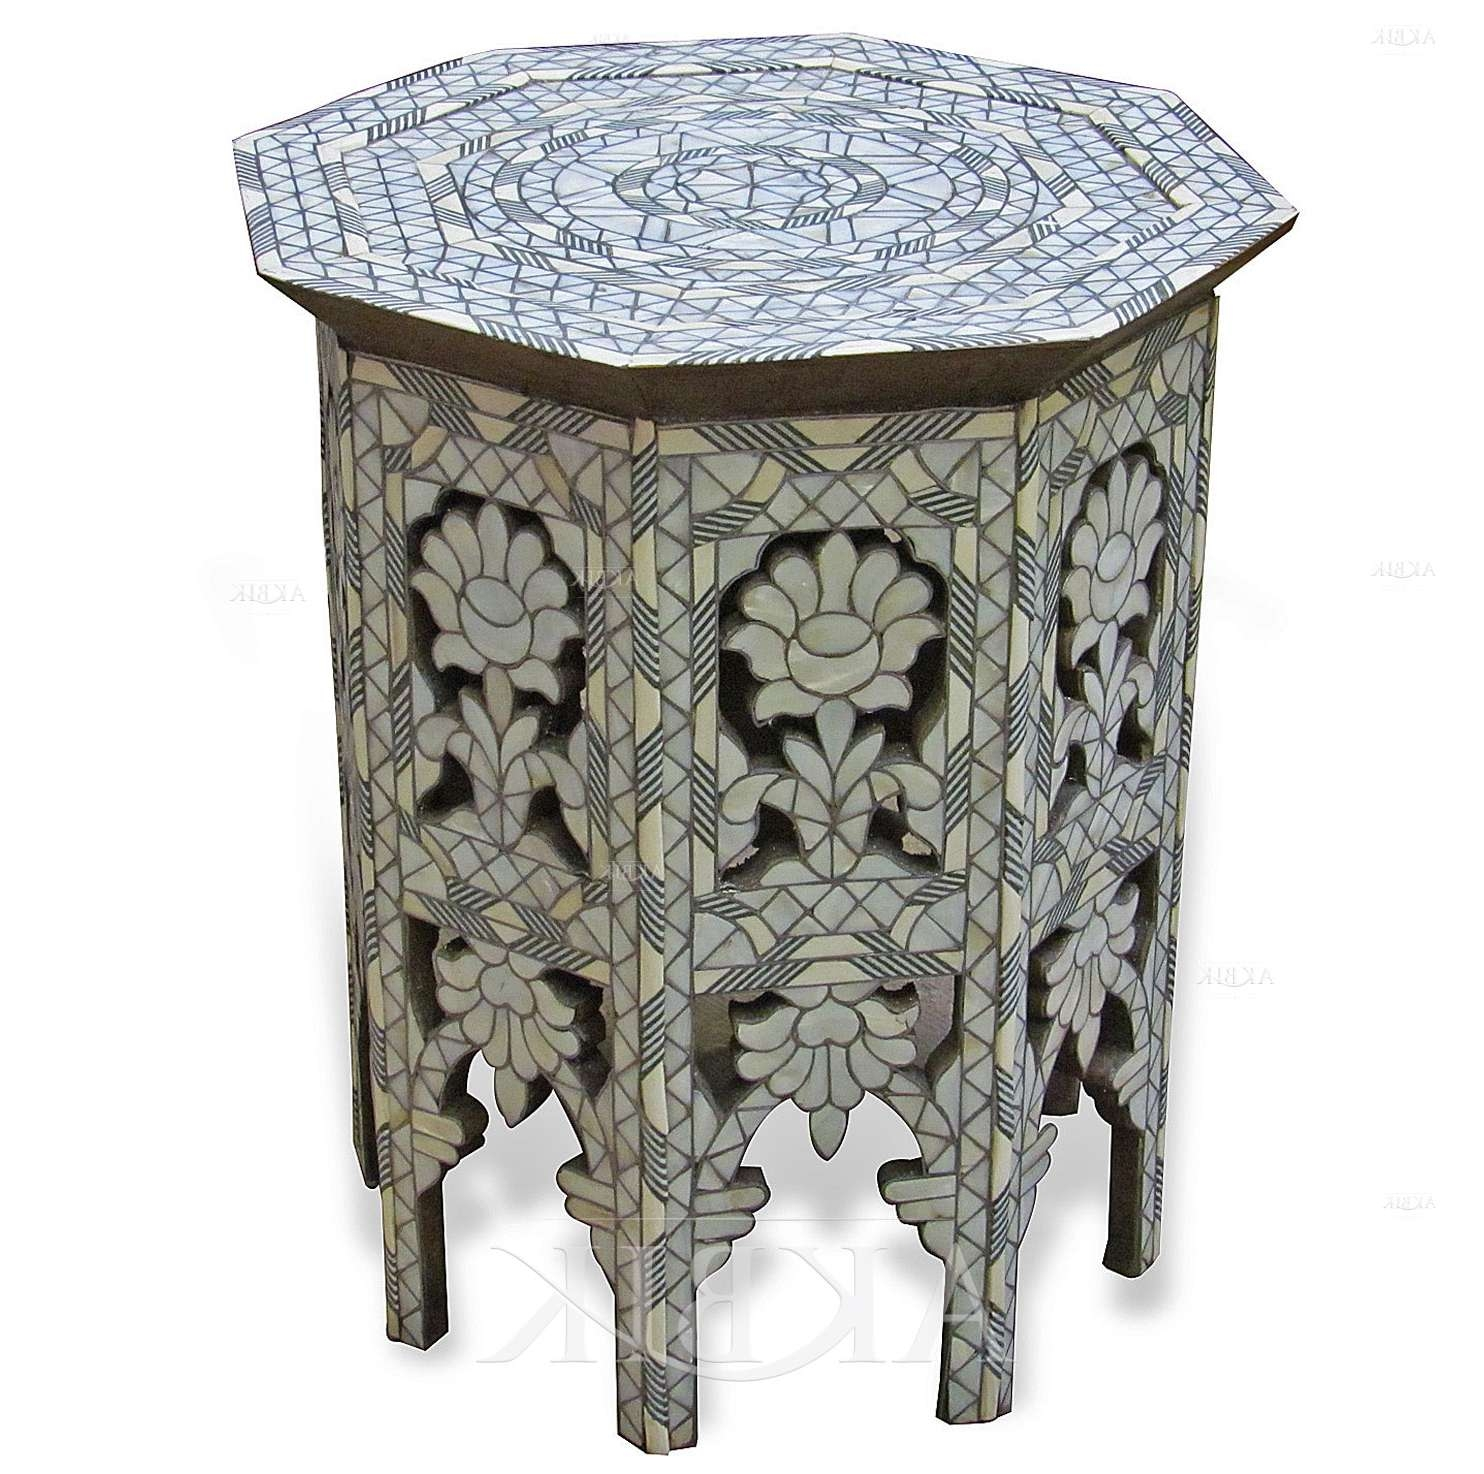 Mediterranean, Levantine & Syrian Furniture Inlaid With Mother Of Within Trendy Mother Of Pearl Coffee Tables (View 10 of 20)